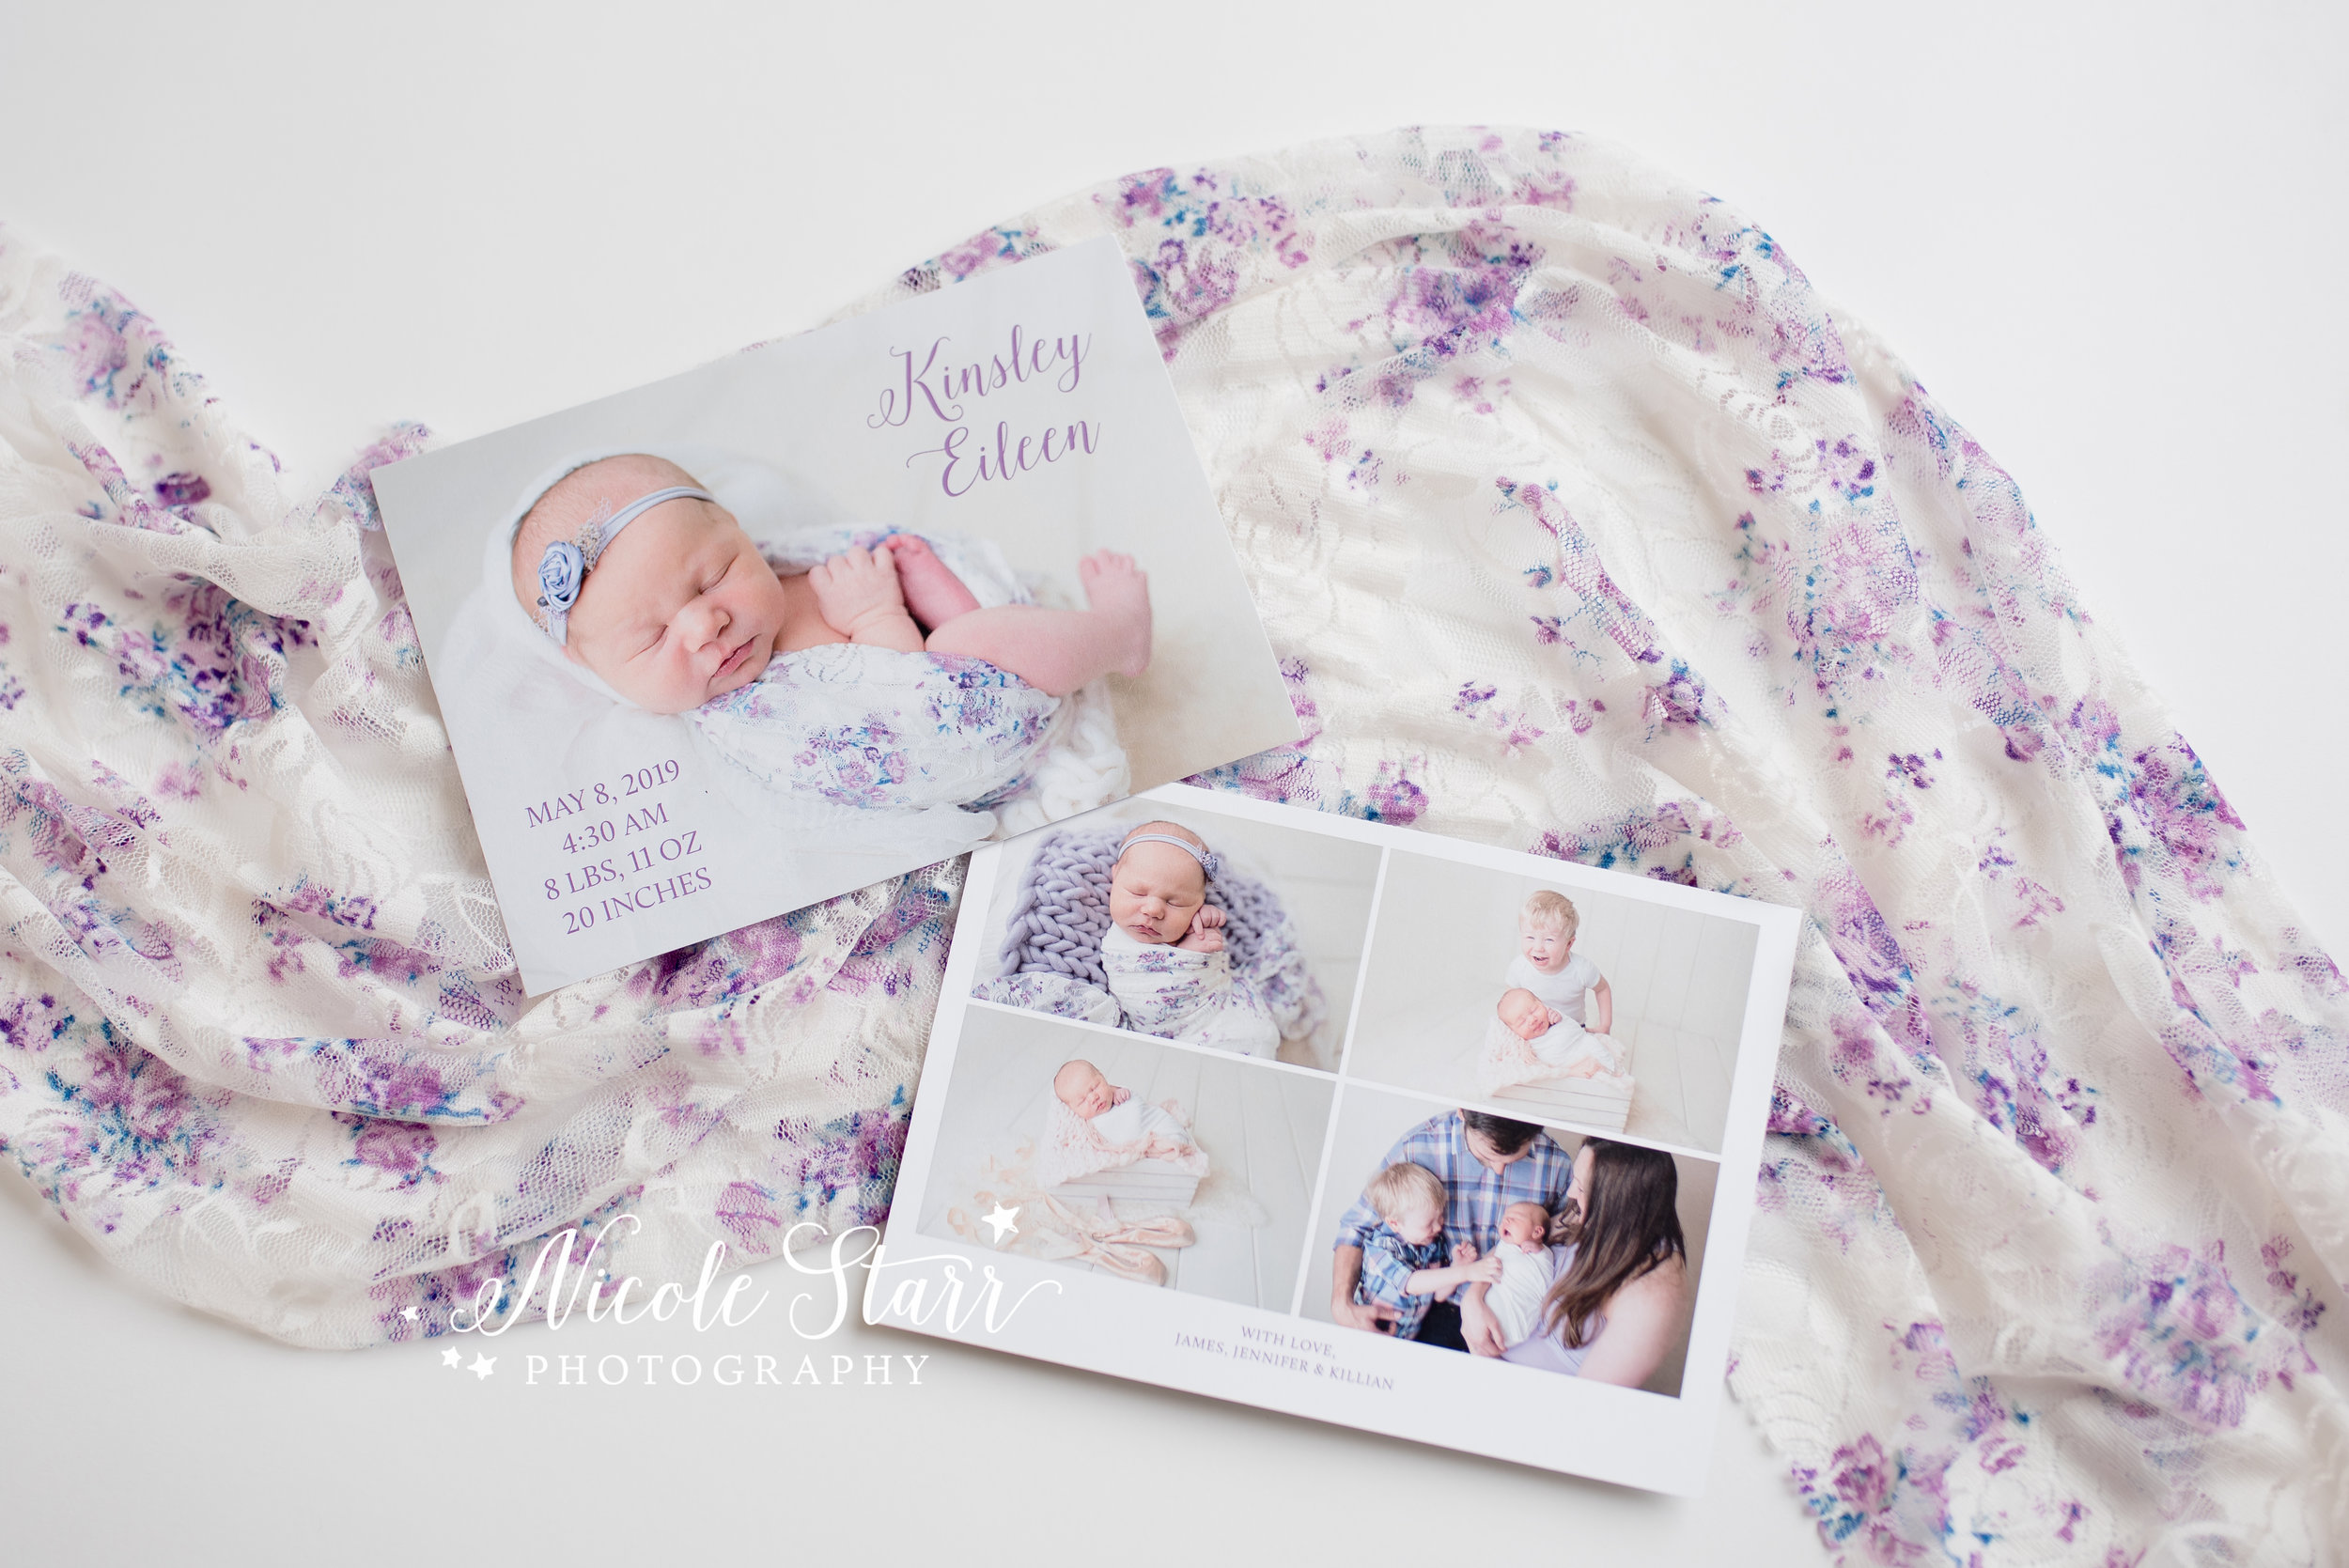 Nicole Starr Photography | Saratoga Springs Newborn Photographer | Boston Newborn Photographer | Upstate NY Newborn Photographer | Newborn Photographer | Delmar NY Newborn Photographer | Loudonville Newborn Photographer | product, album, linen album, print your photos, photo album